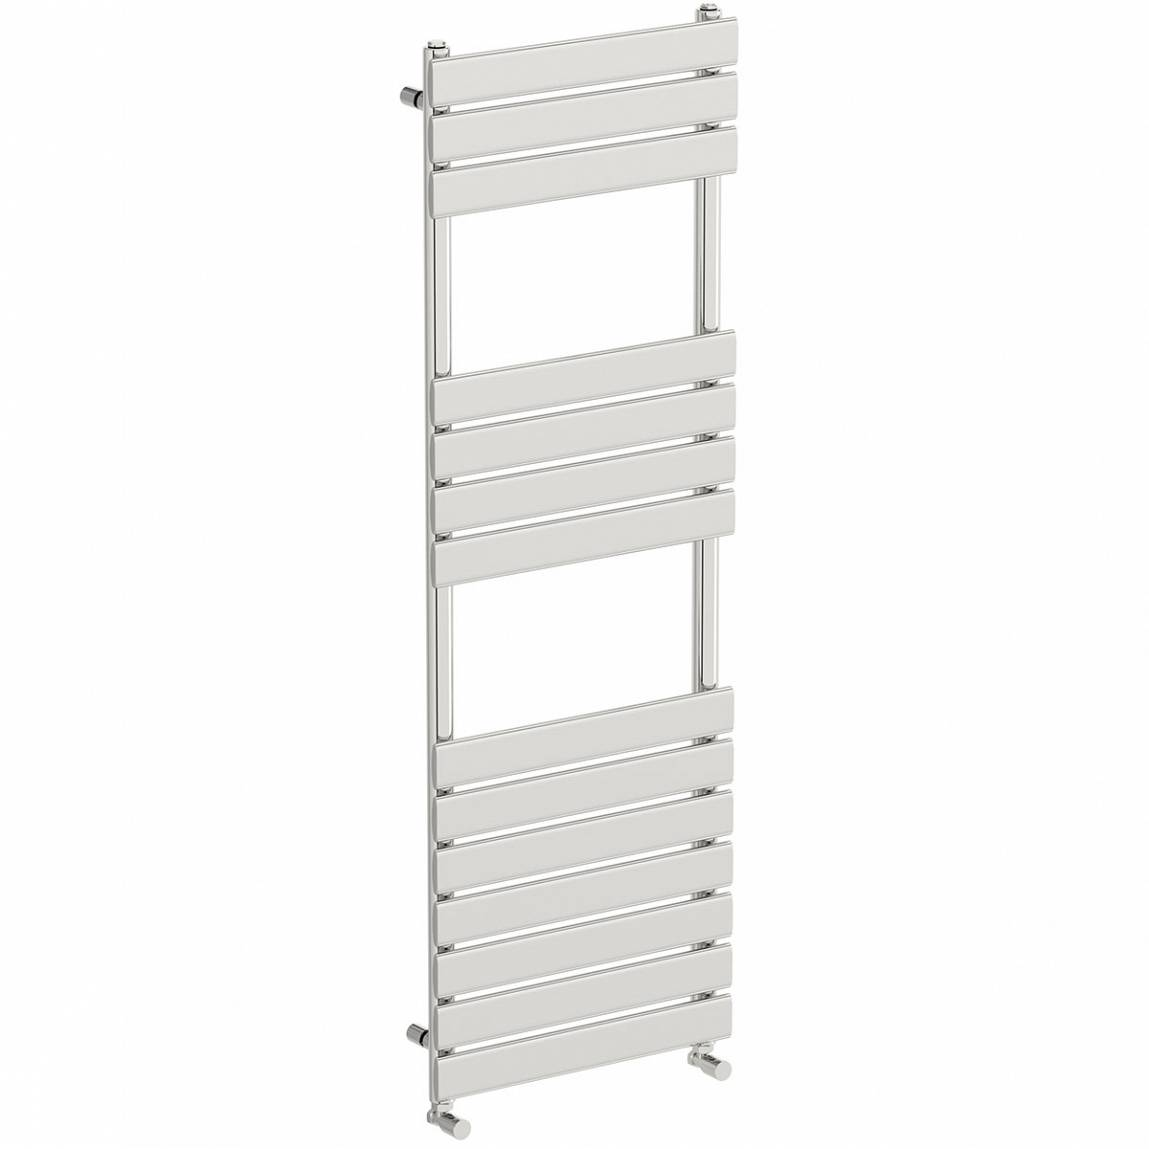 Image of Signelle Radiator 1500 x 500